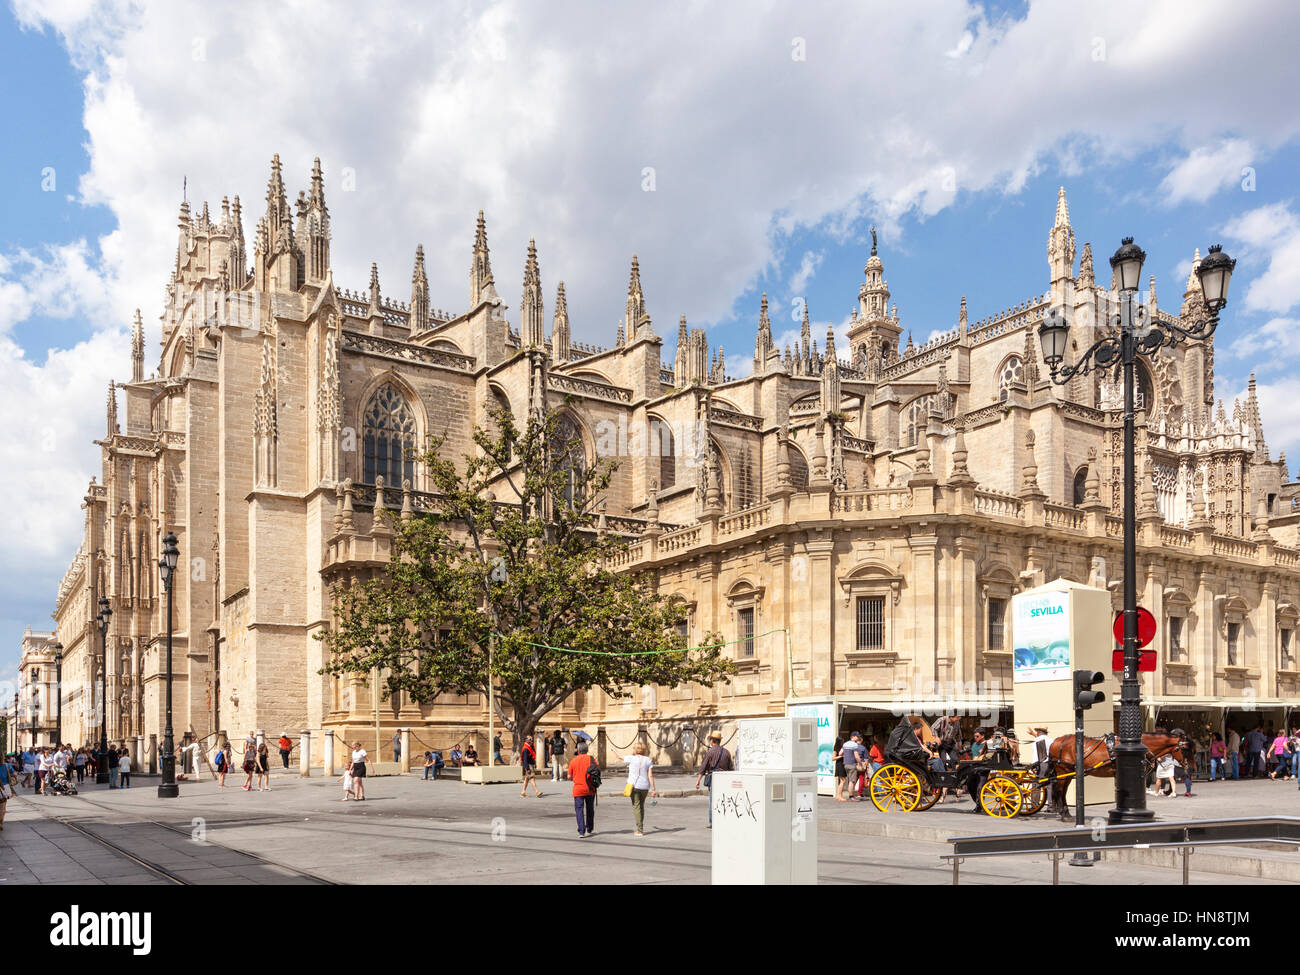 Seville, Spain - April 30, 2016: The Seville Cathedral, view from the south, horse-drawn carriage in front, people - Stock Image